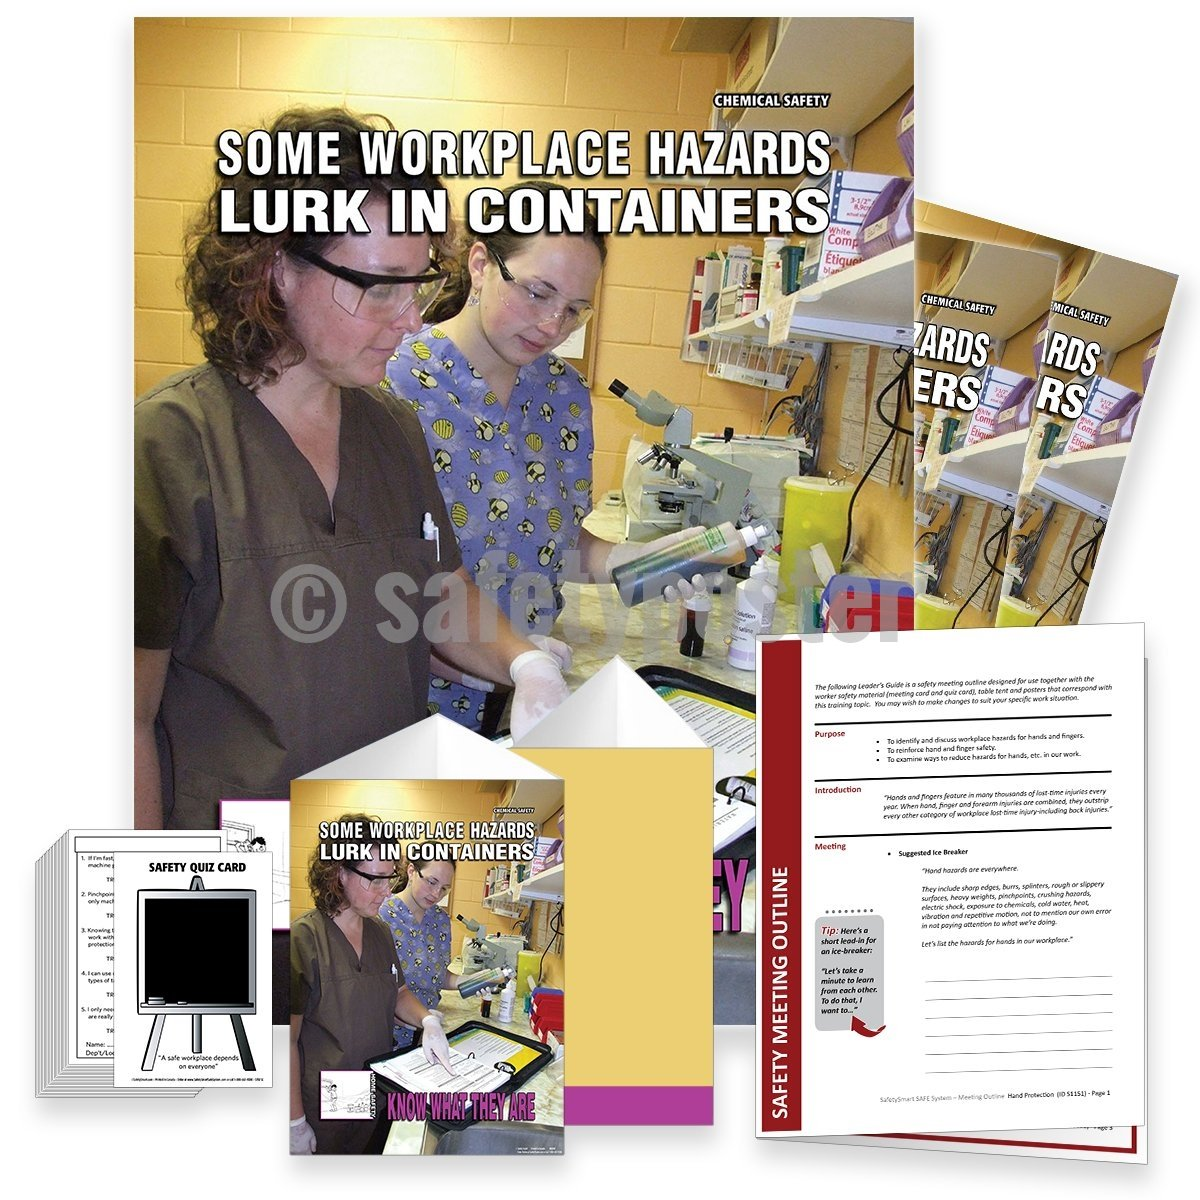 Safety Meeting Kit - Some Workplace Hazards Lurk In Containers Kits